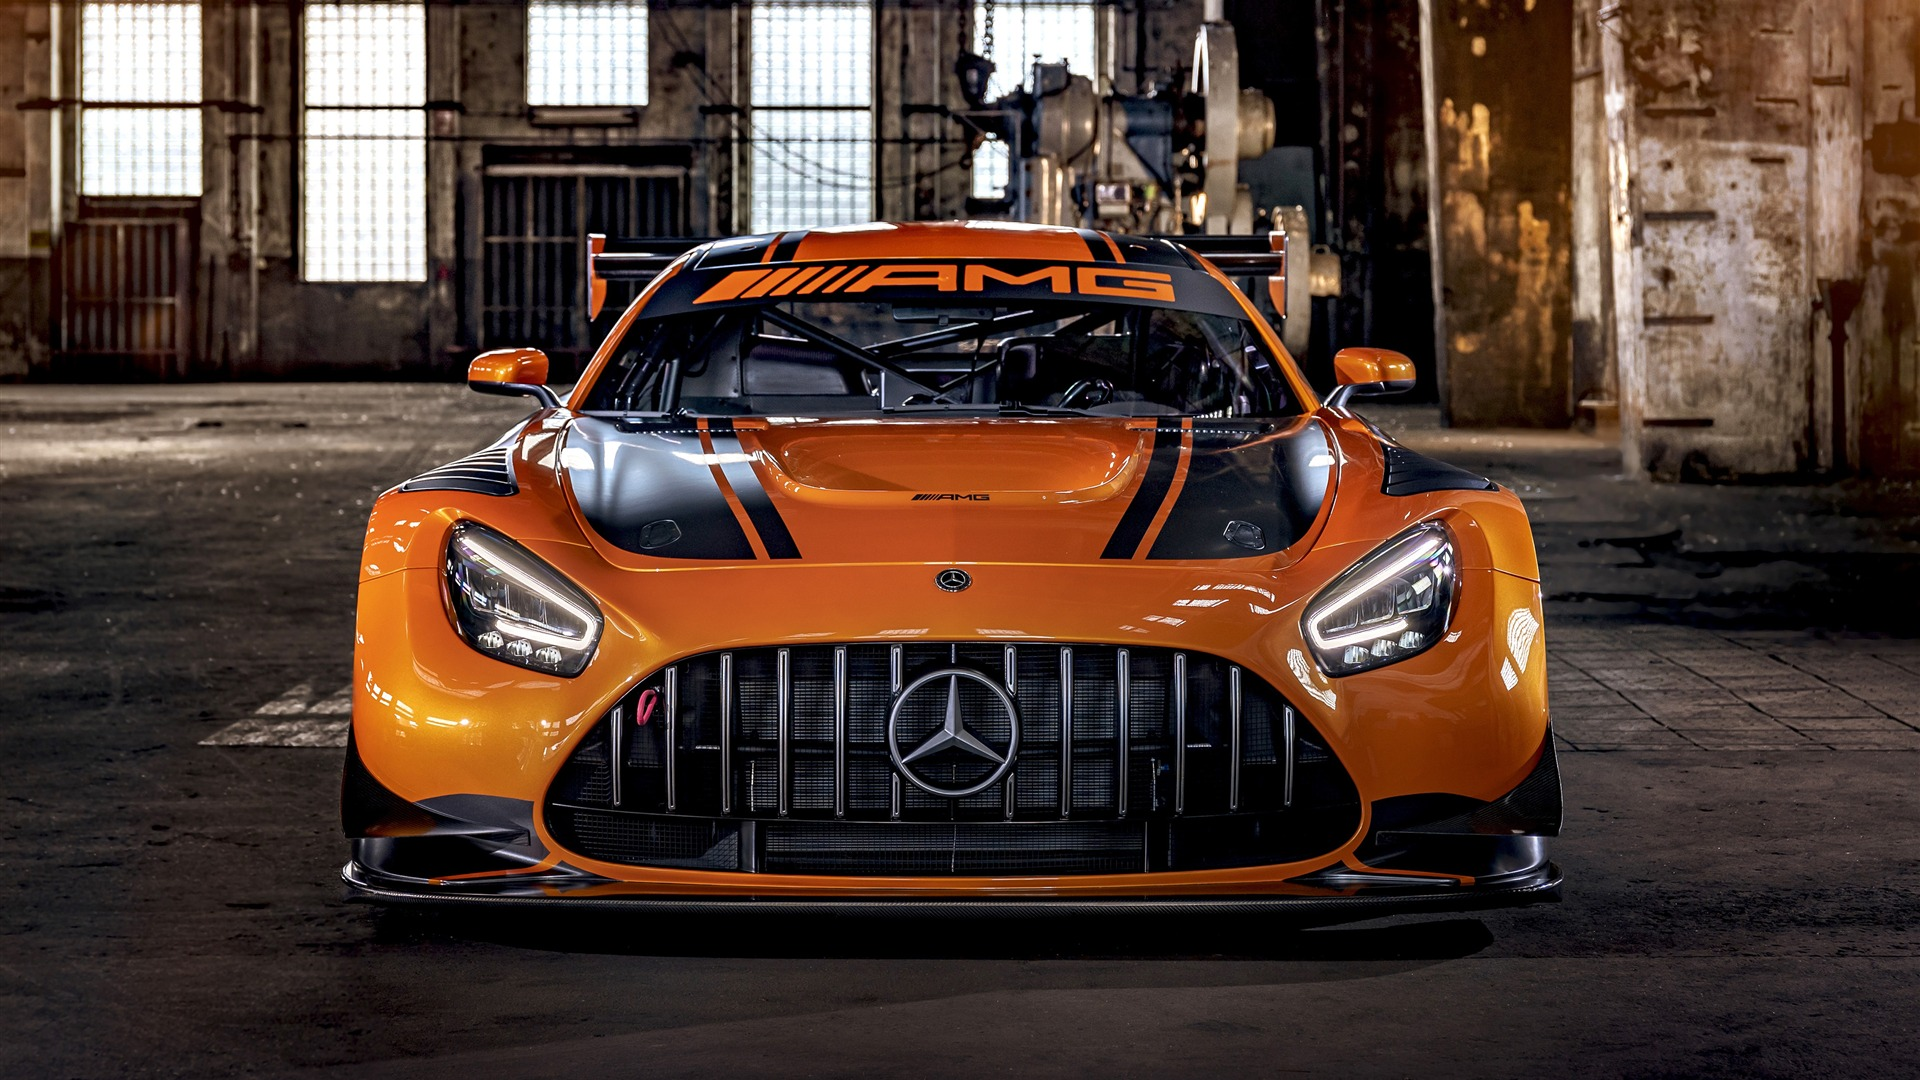 Mercedes Amg GT3 Sports Car HD Wallpaper 1920x1080